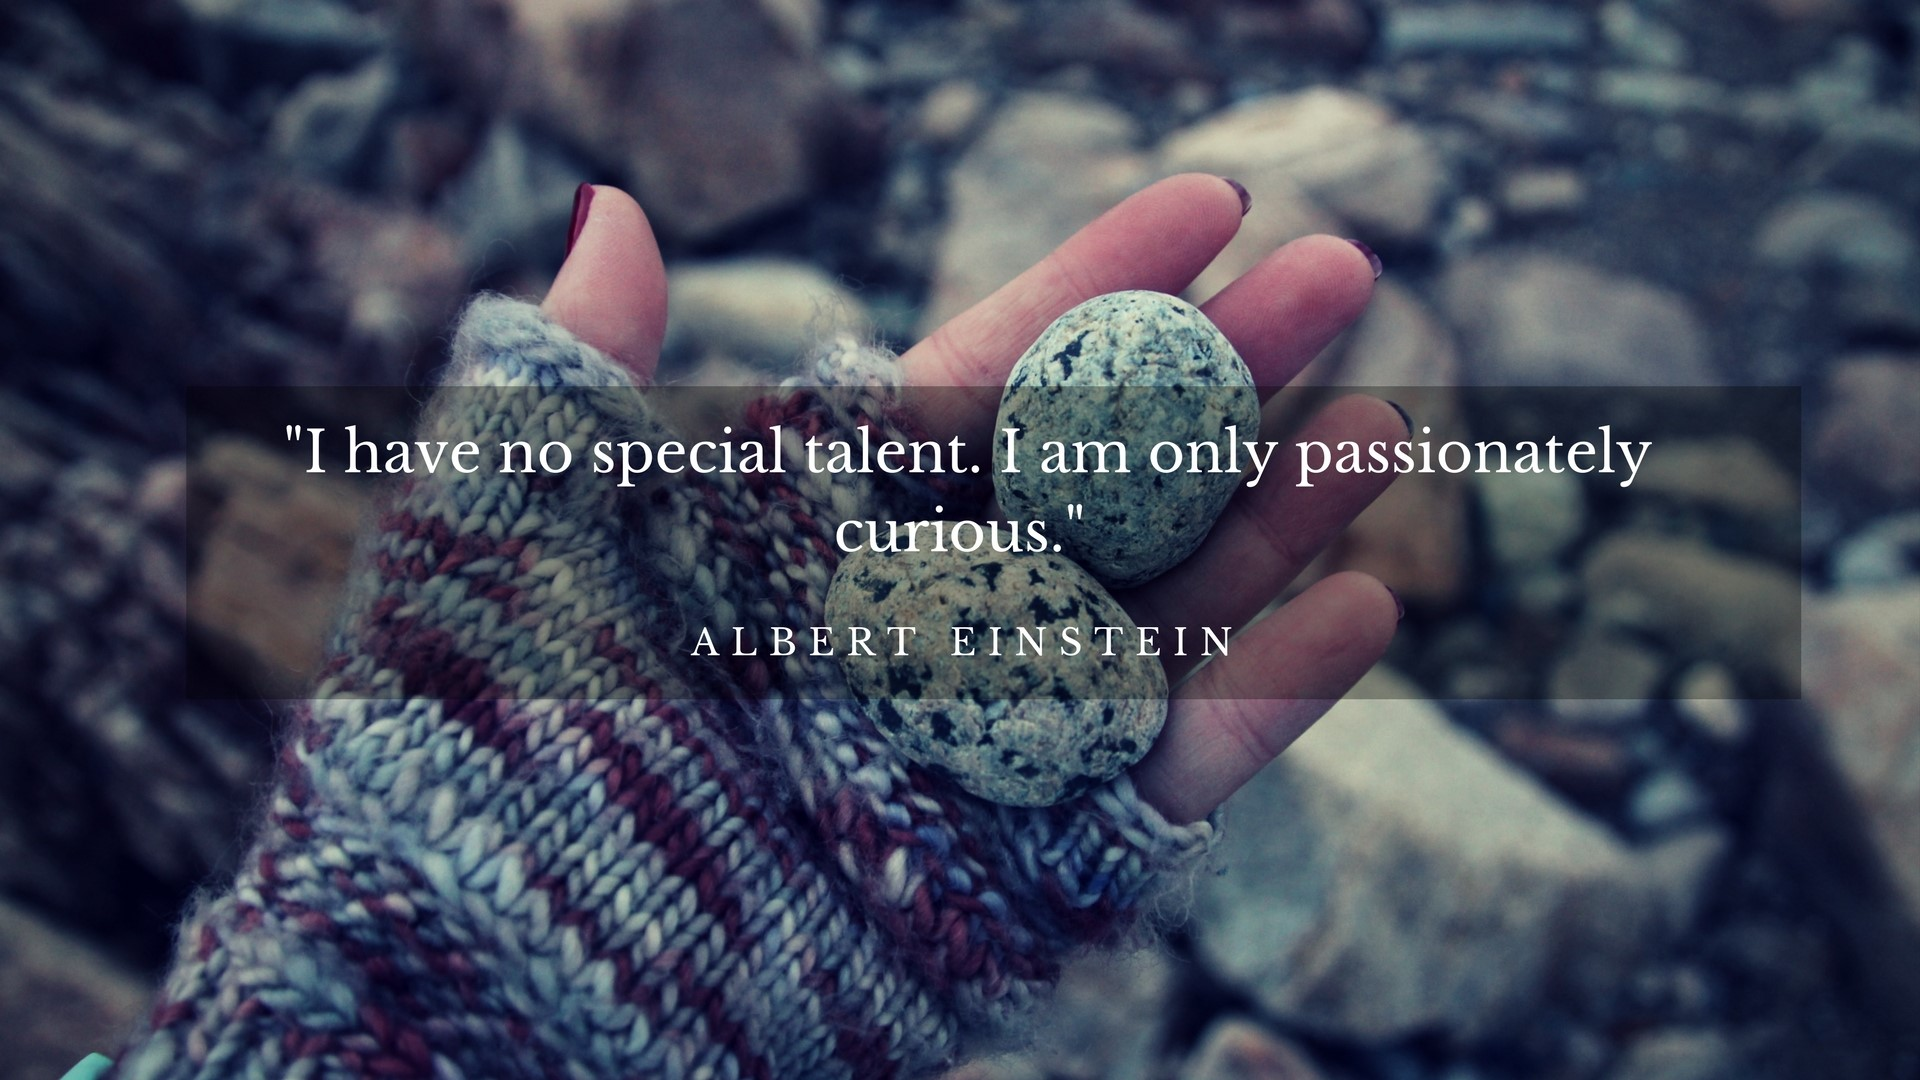 I have no special talent. I am only passionately curious.jpg